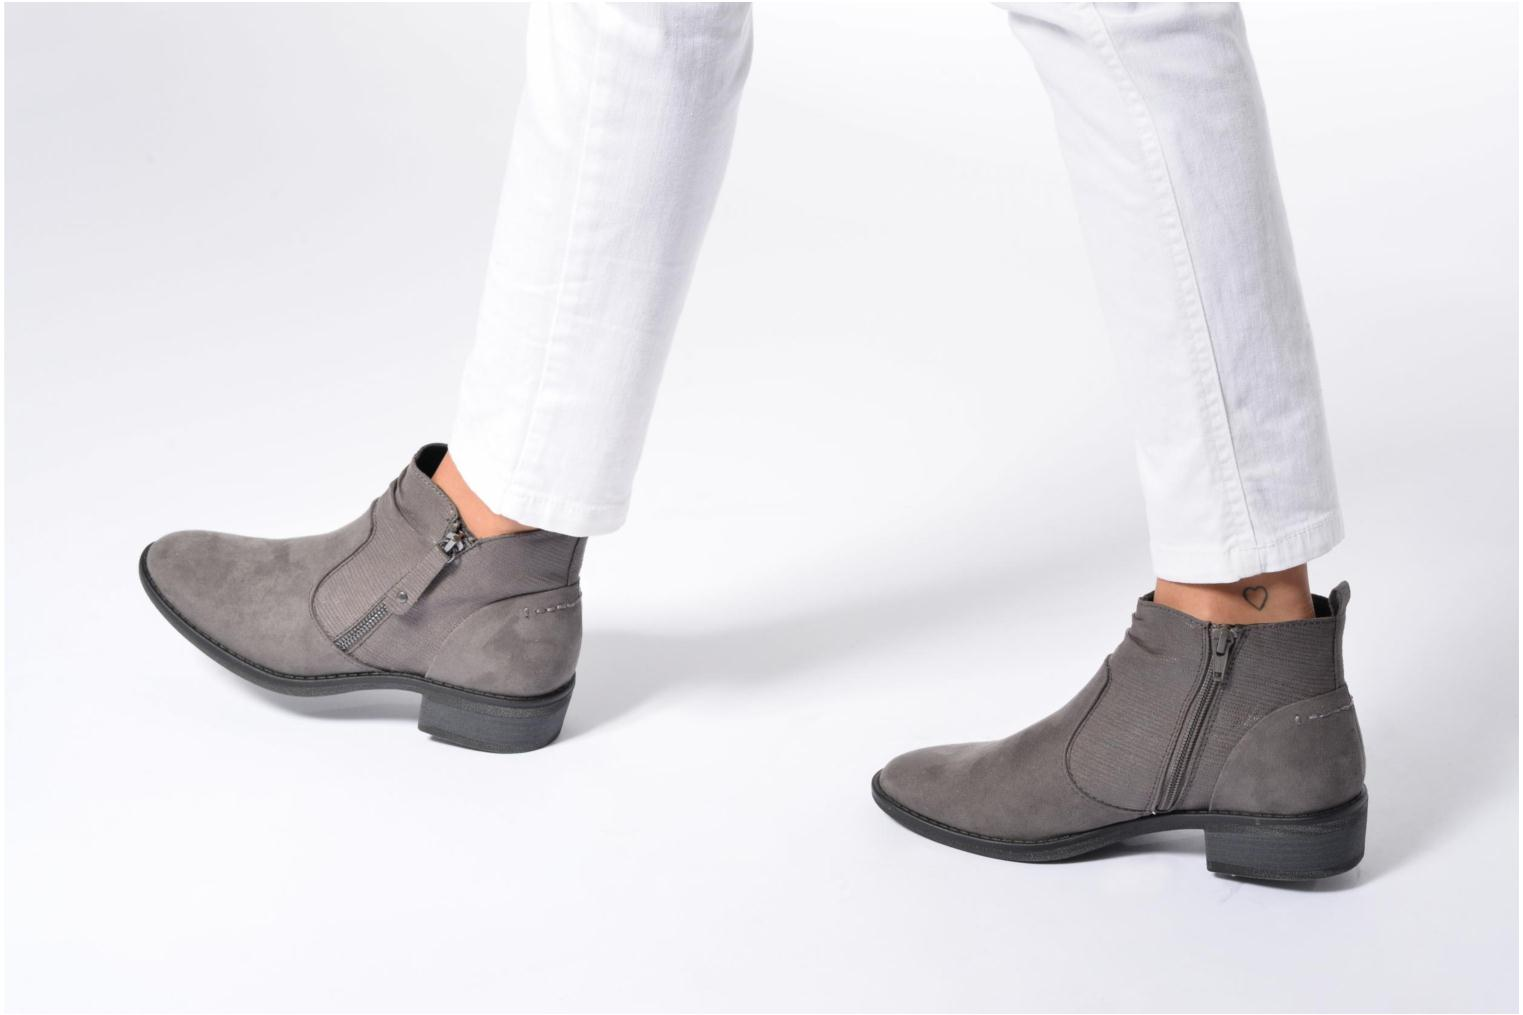 Jana Jana Jubi shoes Graphite Jana Graphite shoes Graphite shoes Jubi Jubi shoes Jubi Jana rYqgqXI